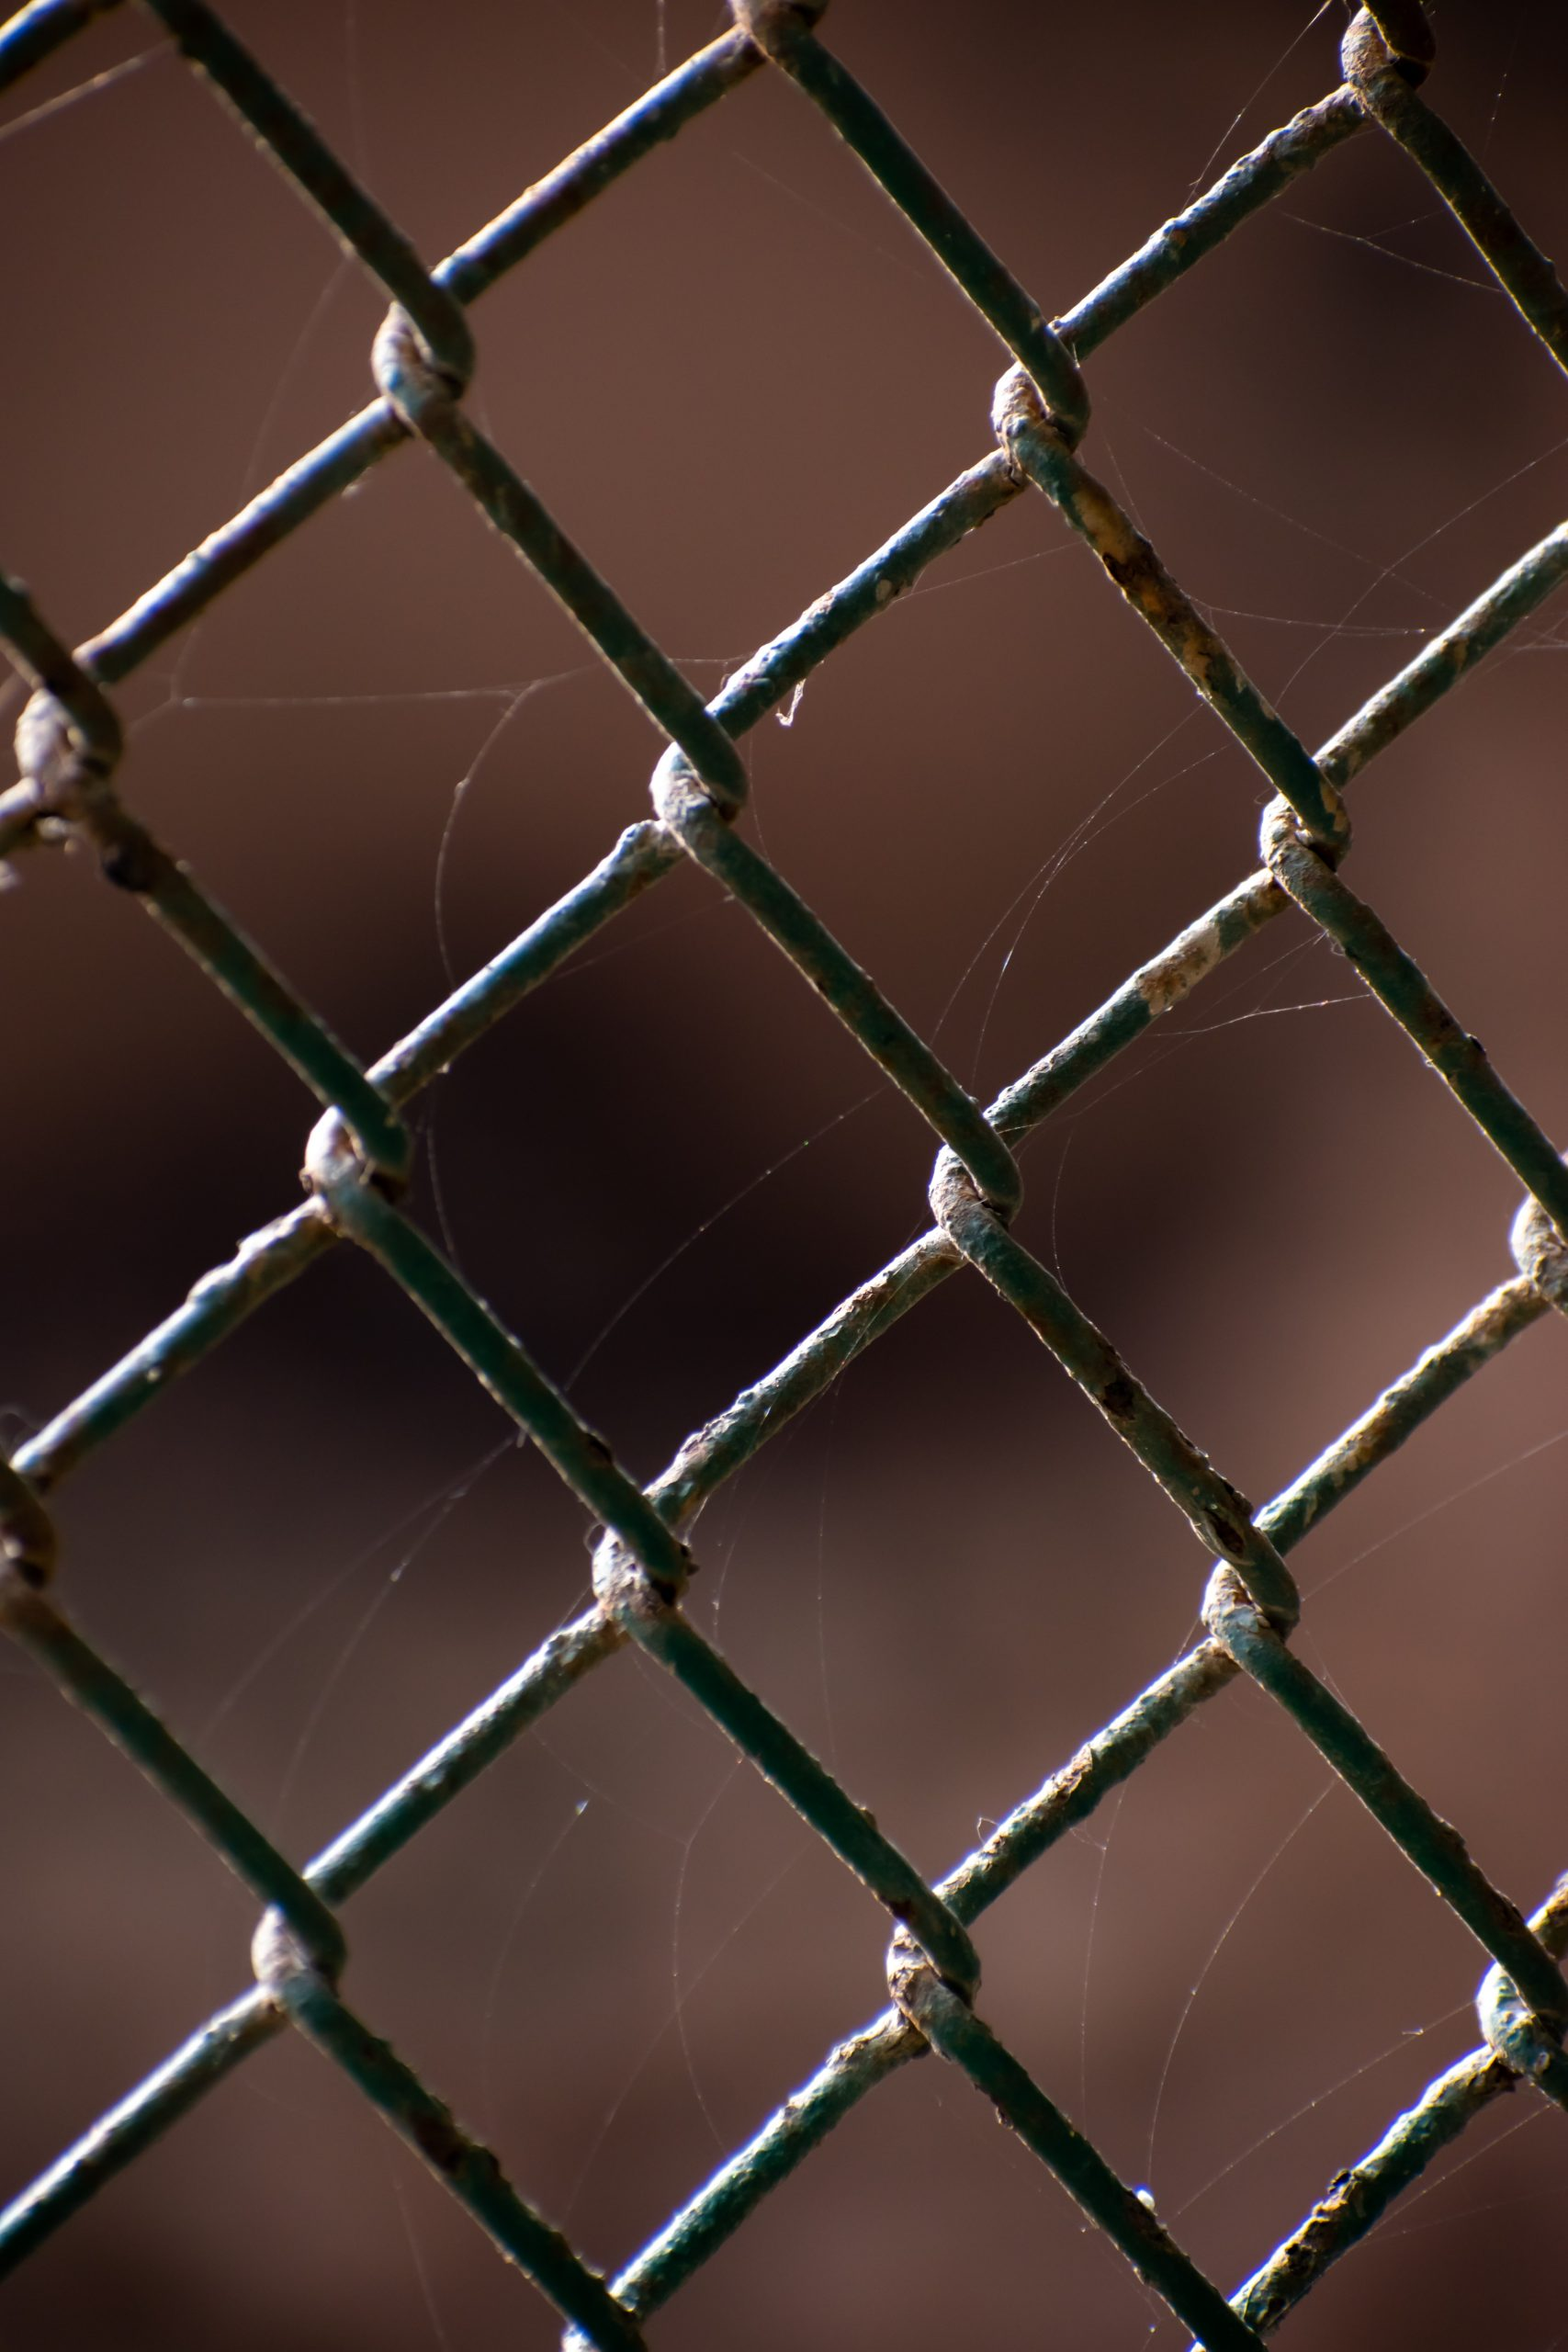 Spider web on steel cage